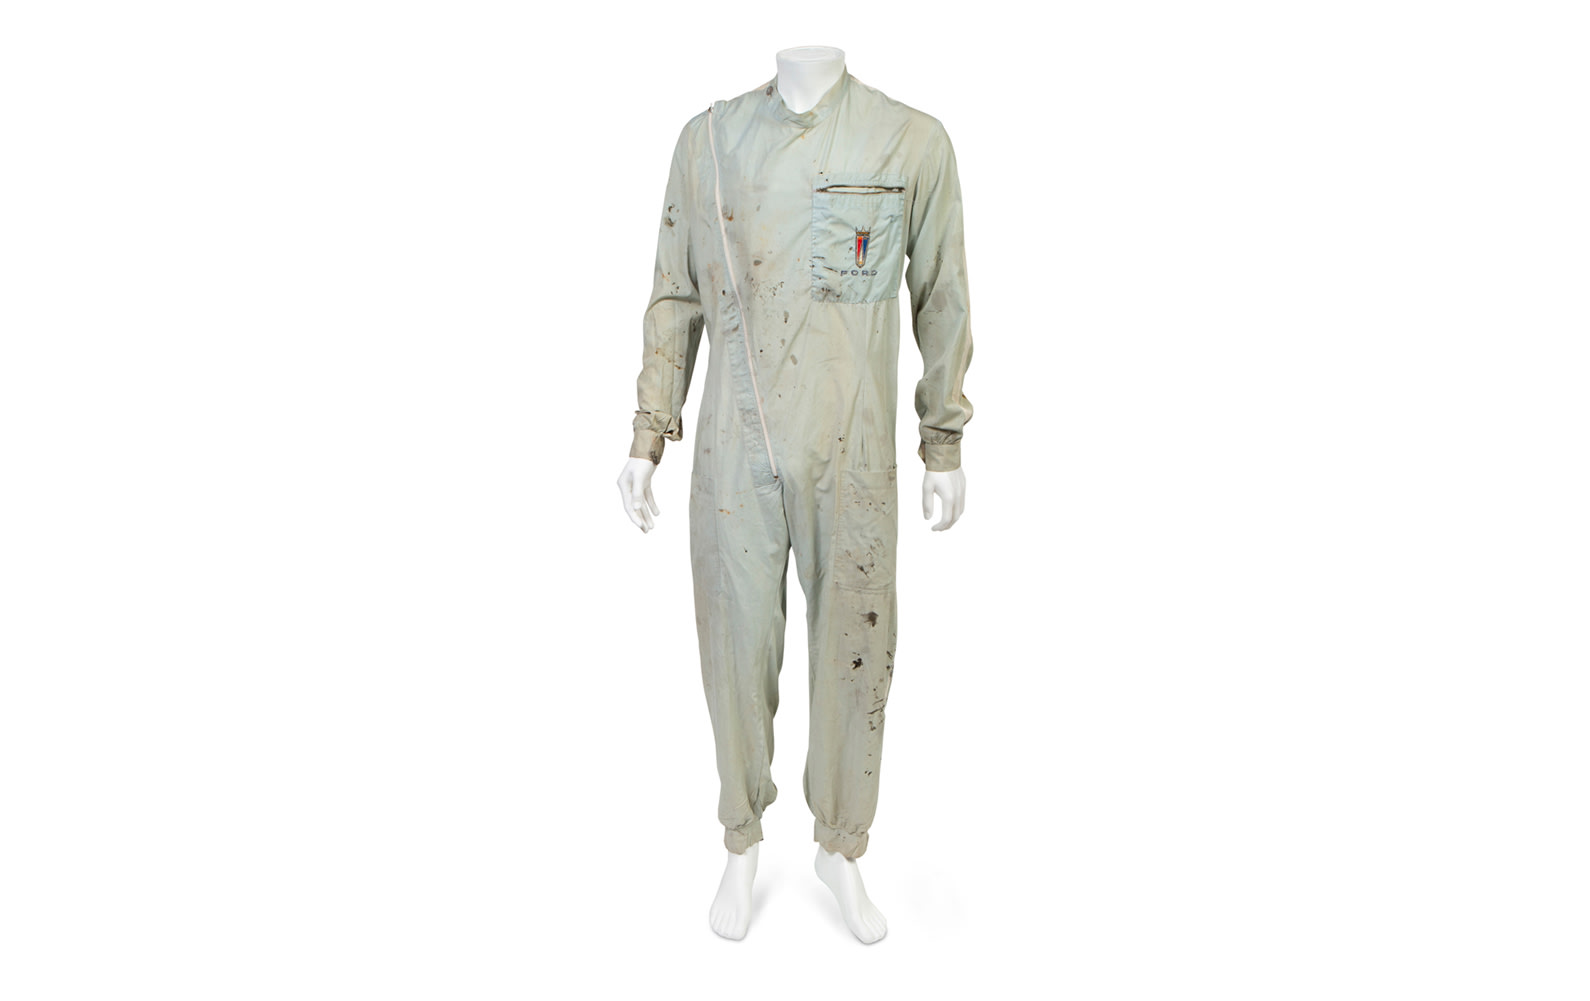 Practical Uniforms London One-Piece Driving Suit, Monogrammed with Ford on the Pocket, c. 1964